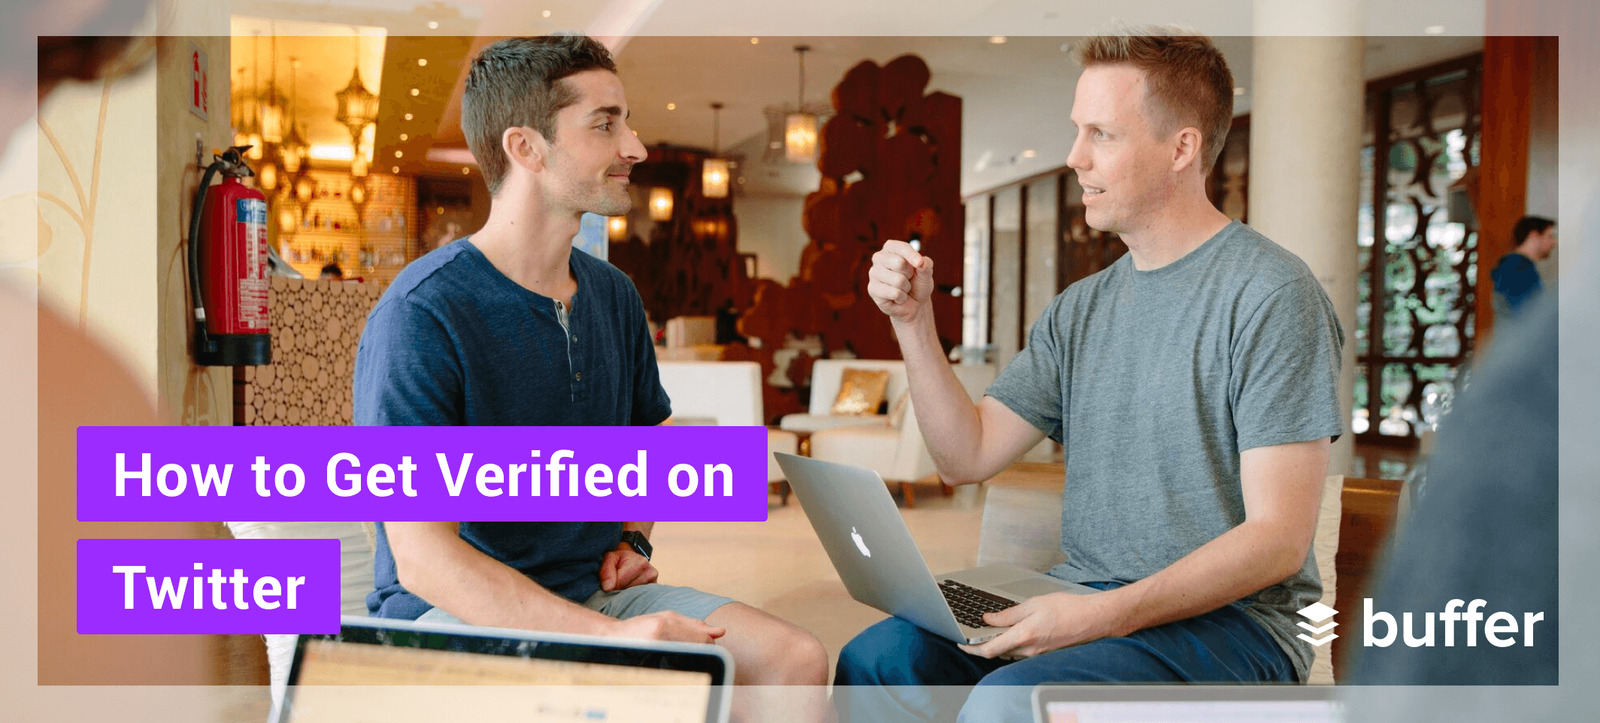 How-to-Get-Verified-on-Twitter.png